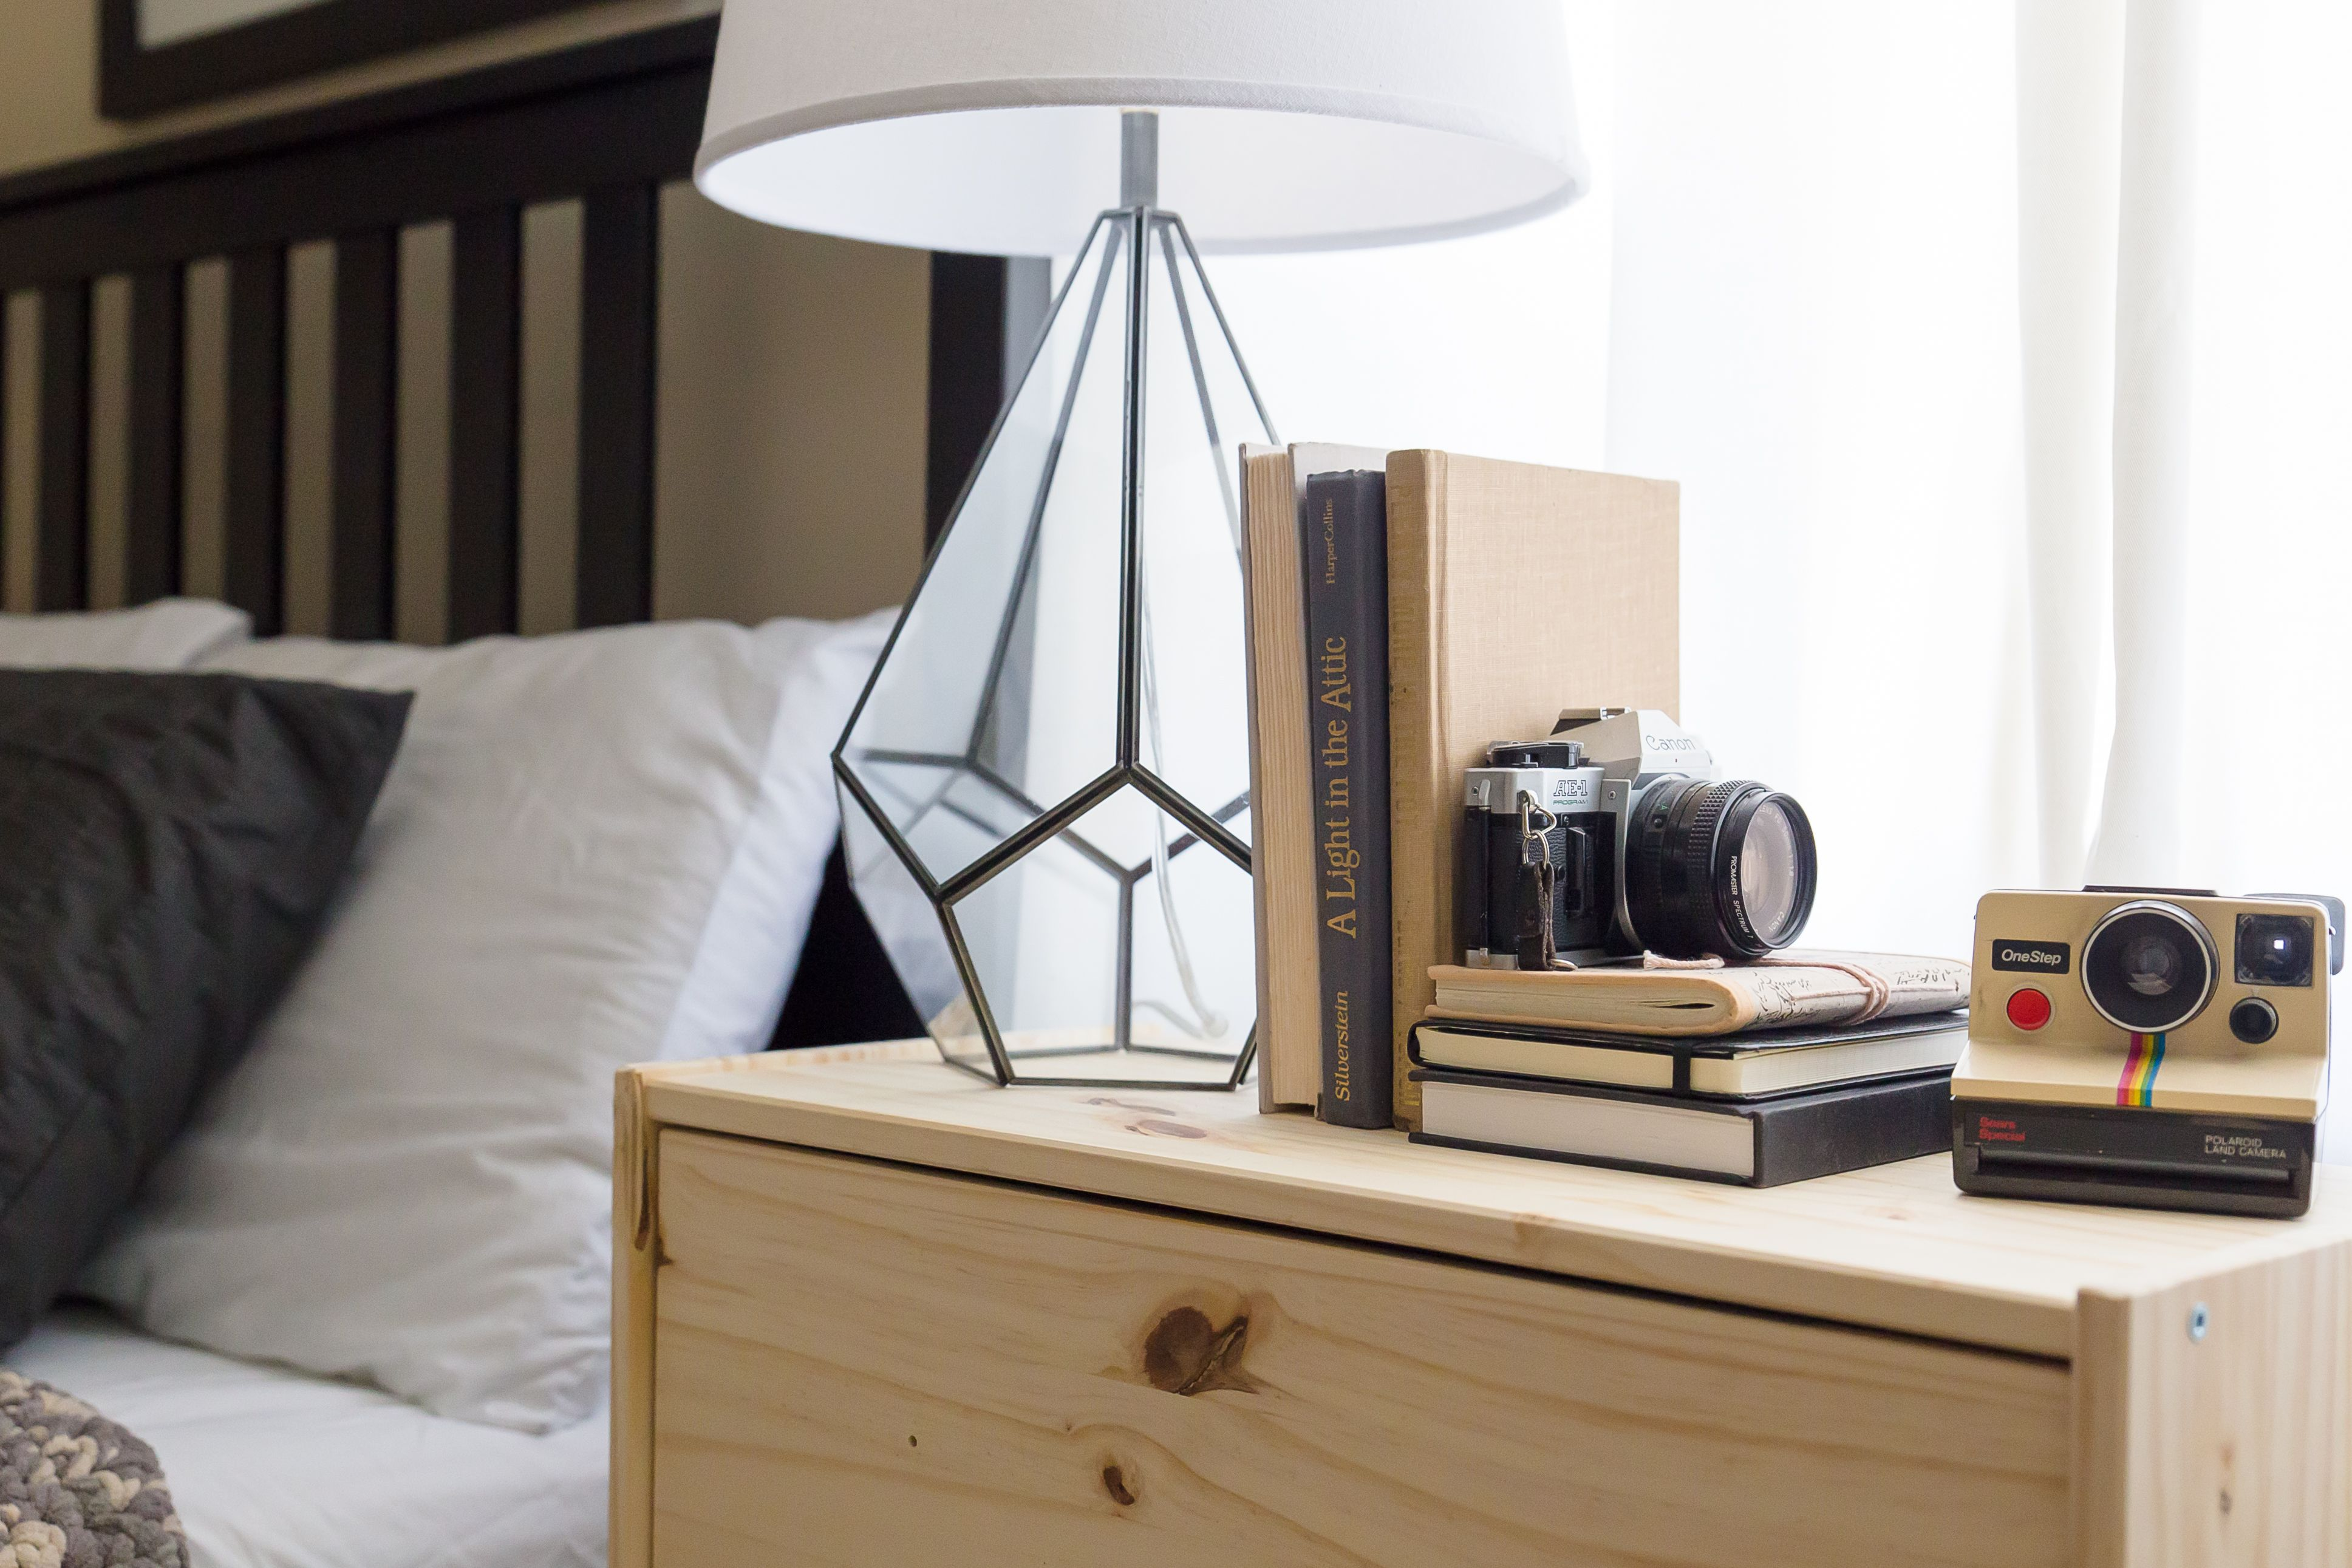 Guest Bedroom/Office. Midcentury with metal and wood accents.